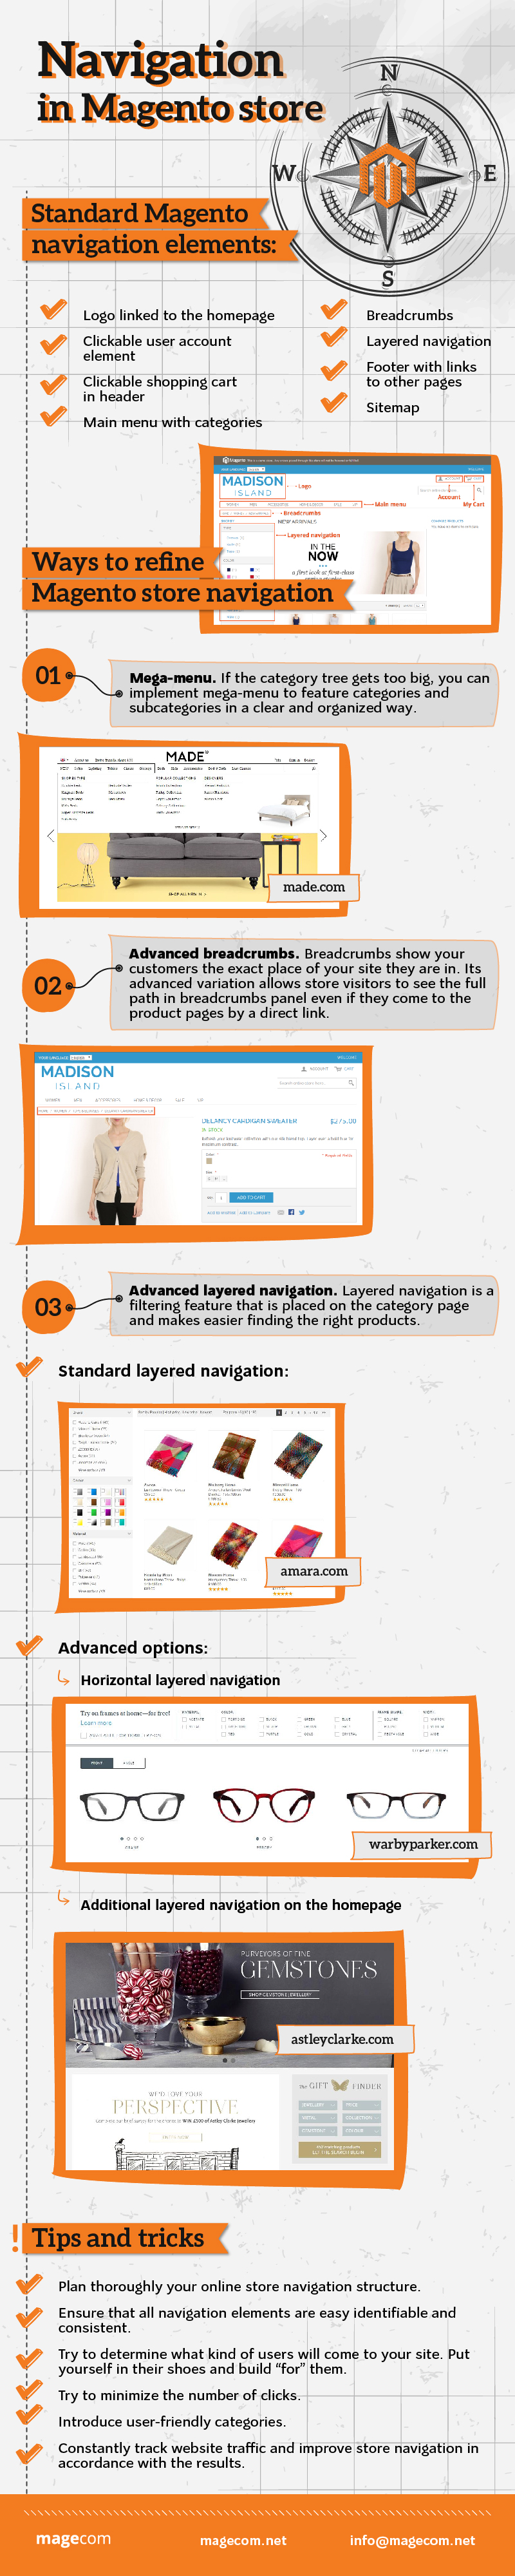 Navigation in Magento Shop